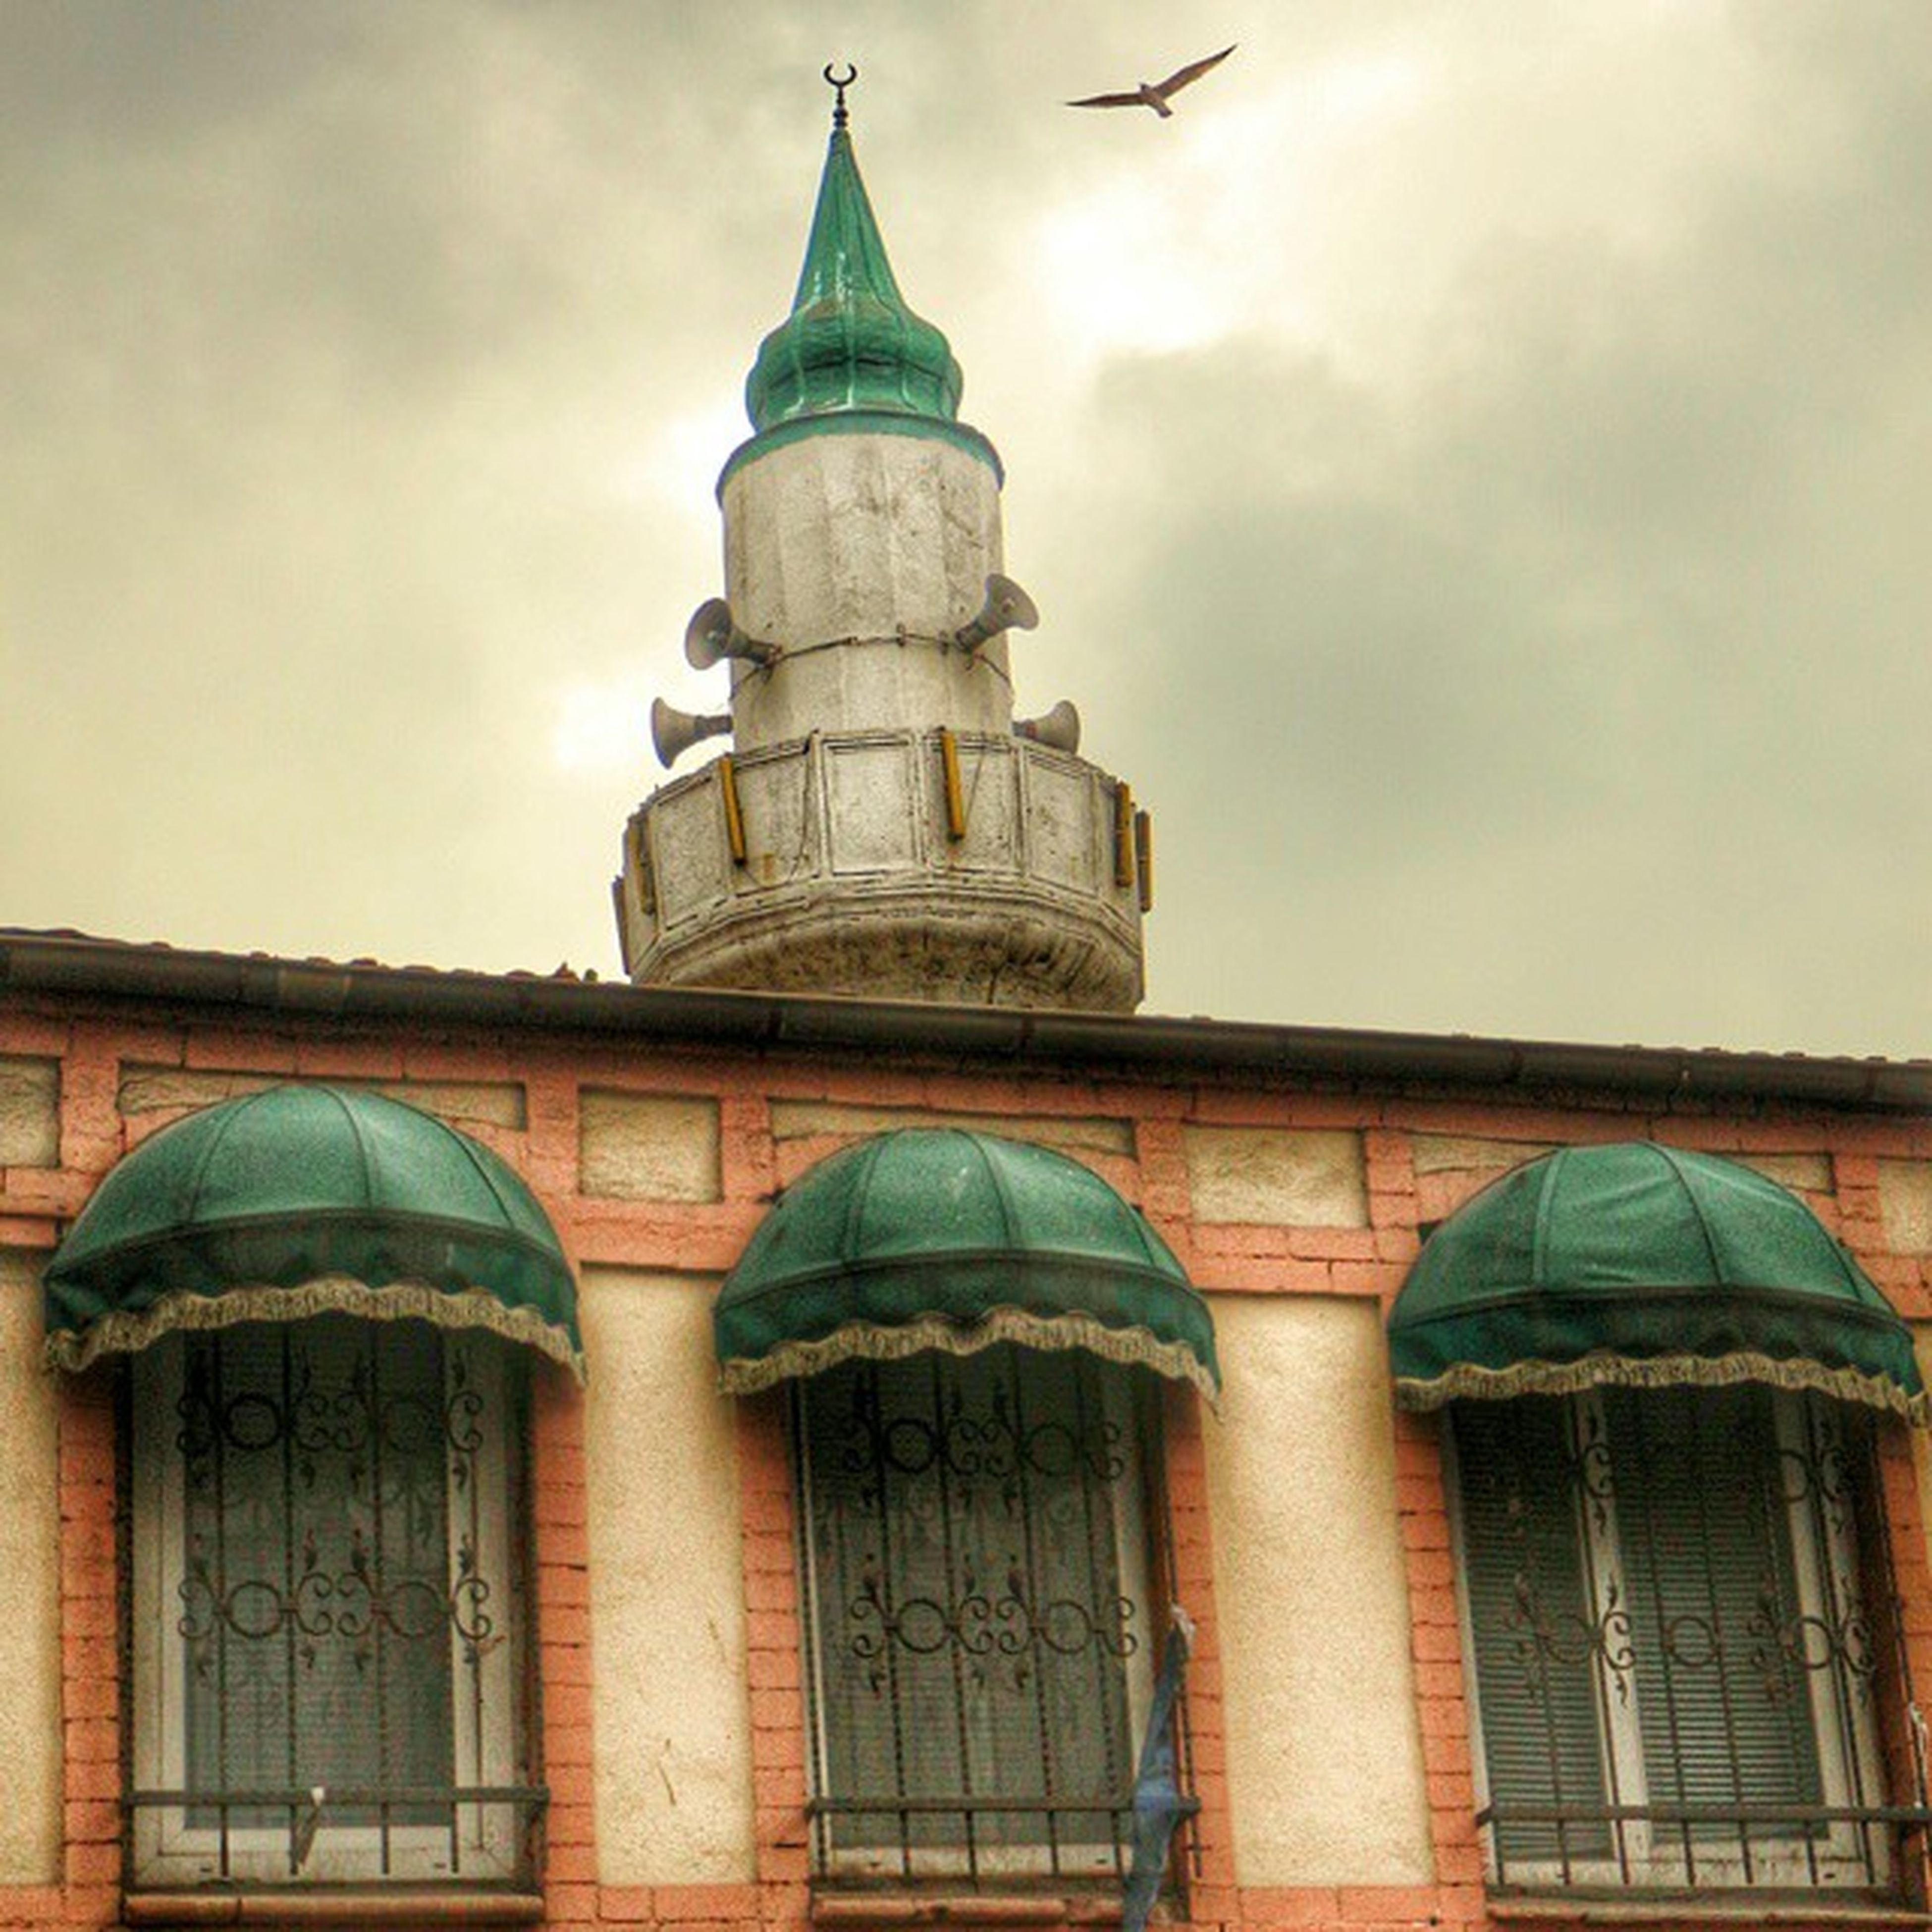 architecture, building exterior, built structure, sky, low angle view, cloud - sky, cloudy, cloud, arch, history, dome, church, place of worship, religion, outdoors, spirituality, facade, old, day